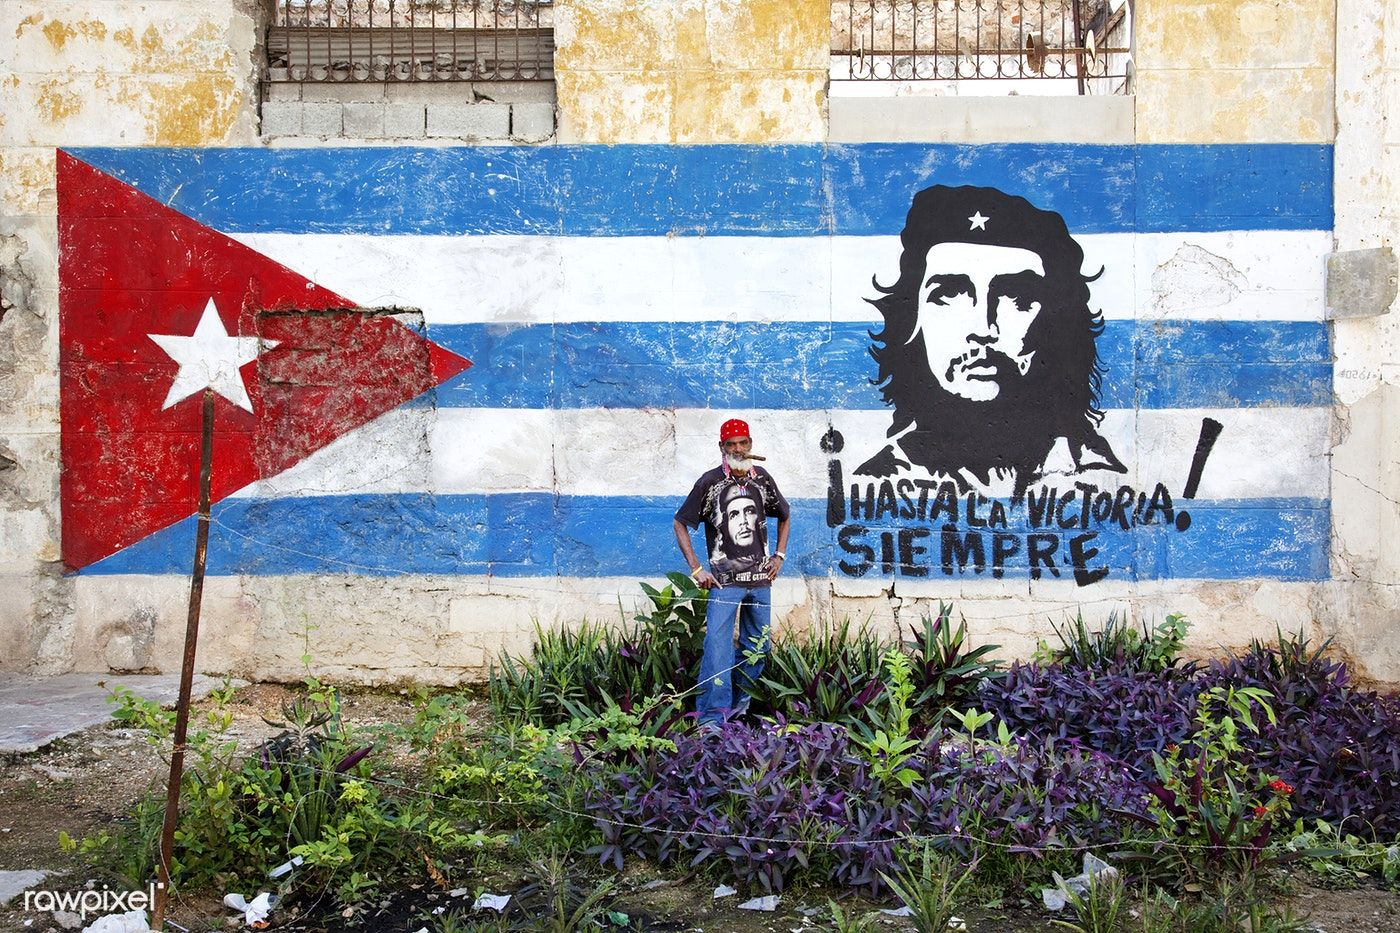 Neighborhood In Old Havana With Hand Painted Mural Showing The Cuban Flag And Che Guevara Original Image From Carol M Mural Painting Canvas Art Prints Mural